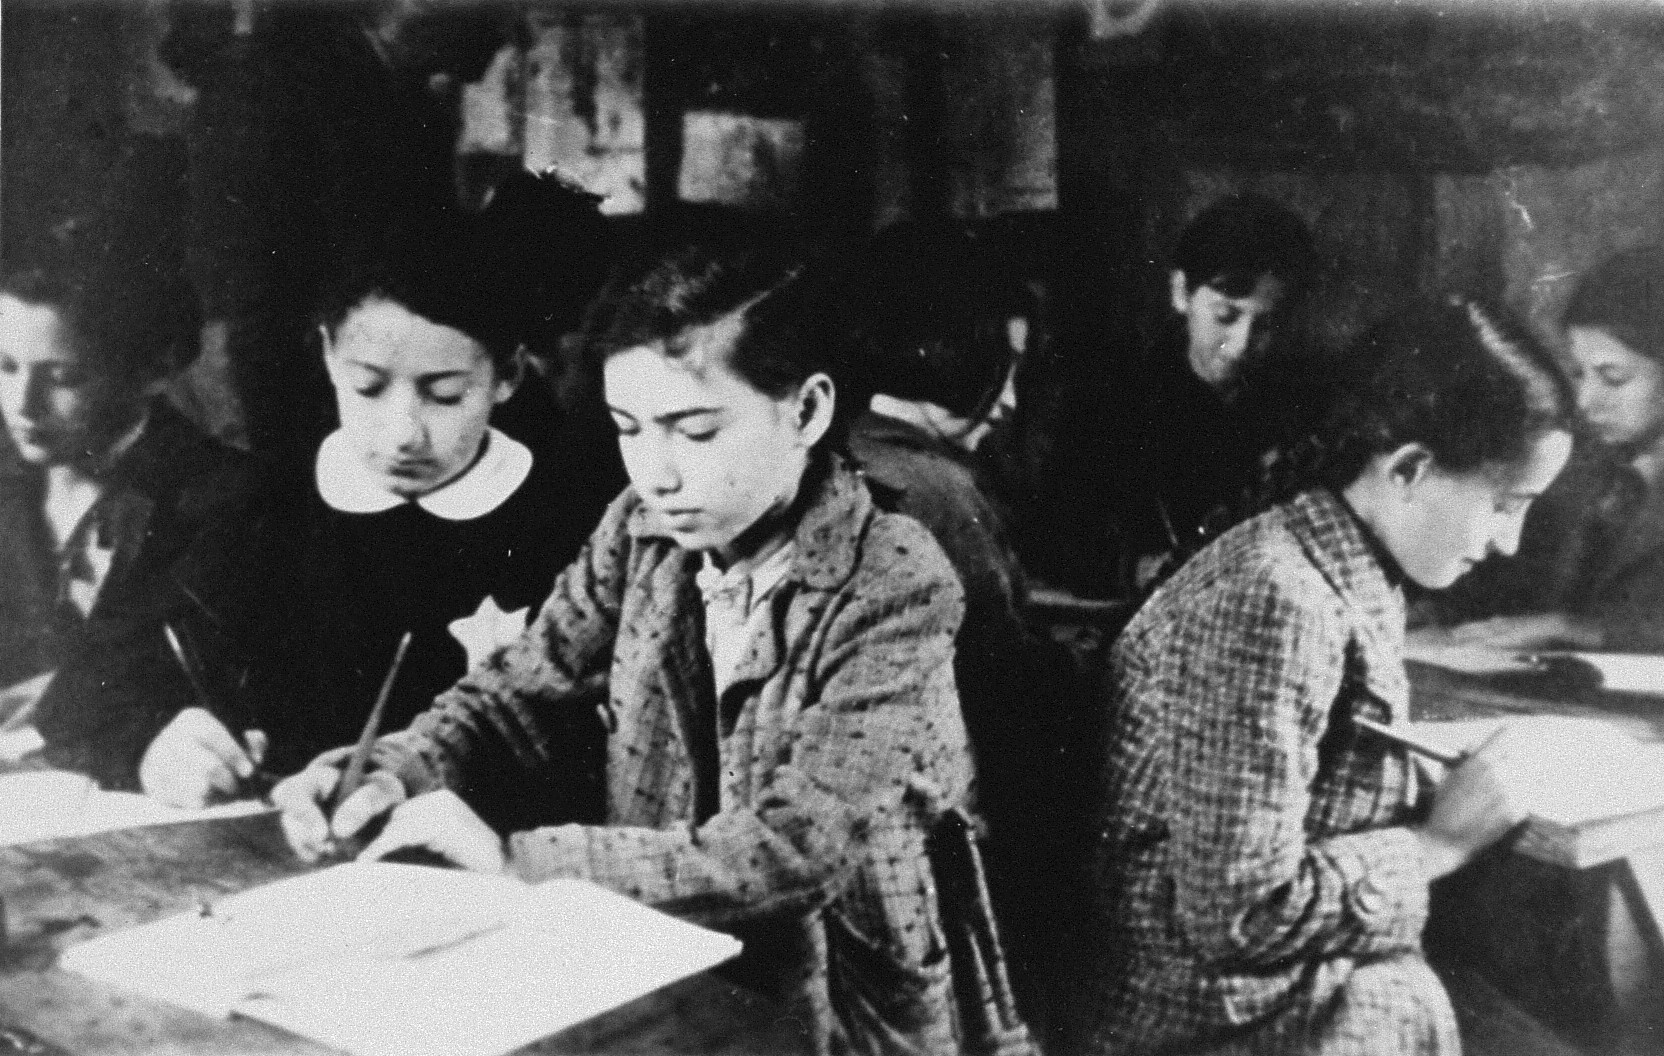 Children studying in a clandestine school in the Kovno ghetto.    Classes were held in a stable at 101 Kriktshukaitchiu Street.  Among those pictured are Taiba Leibaite (far left), Basia Leibaite (second from the left), David Ackerman Falahi (in the back),and teacher Shmuel Rozental (in the background).